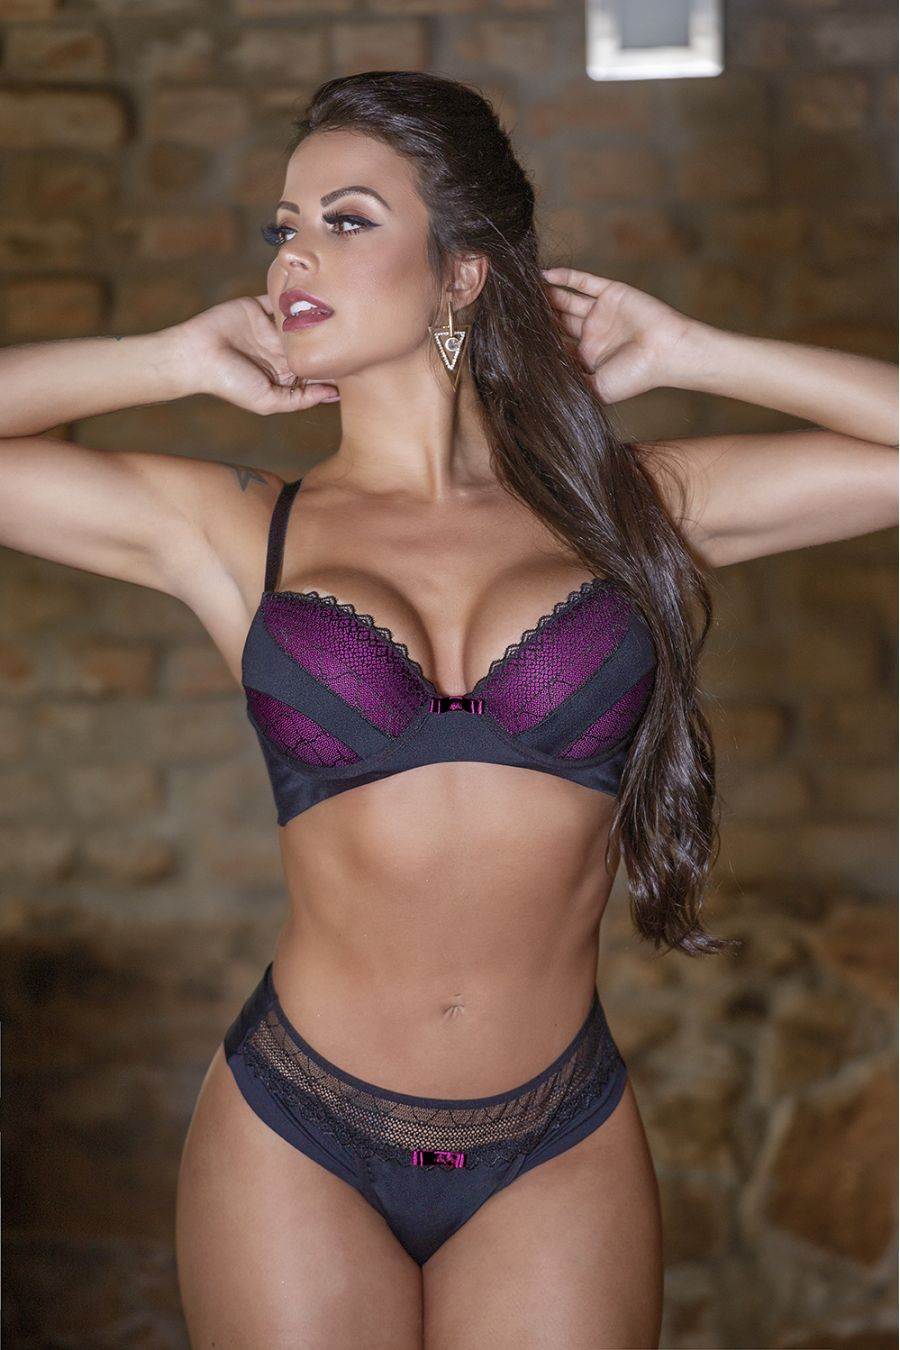 b57b8b3f9 Greisi Kelly Lingerie - Loja Virtual